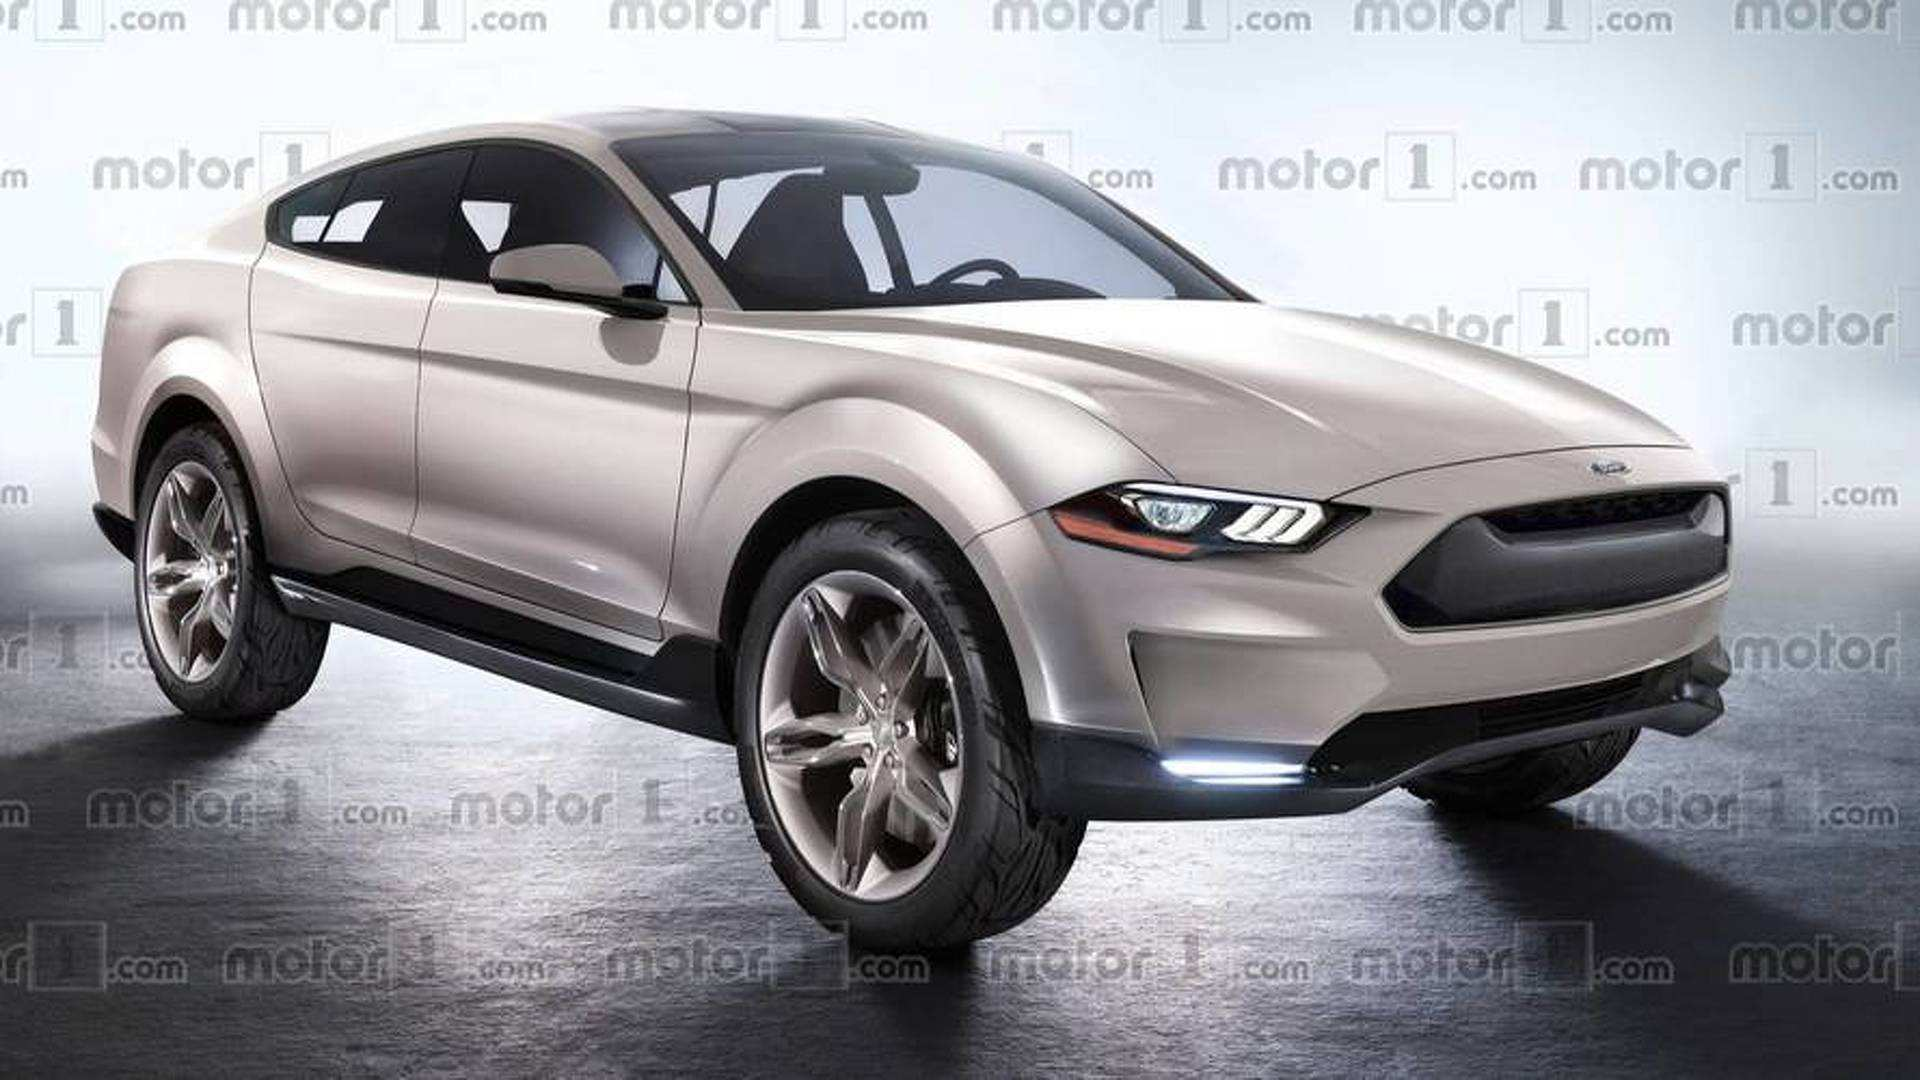 99 Gallery of Ford Cars After 2020 Engine with Ford Cars After 2020